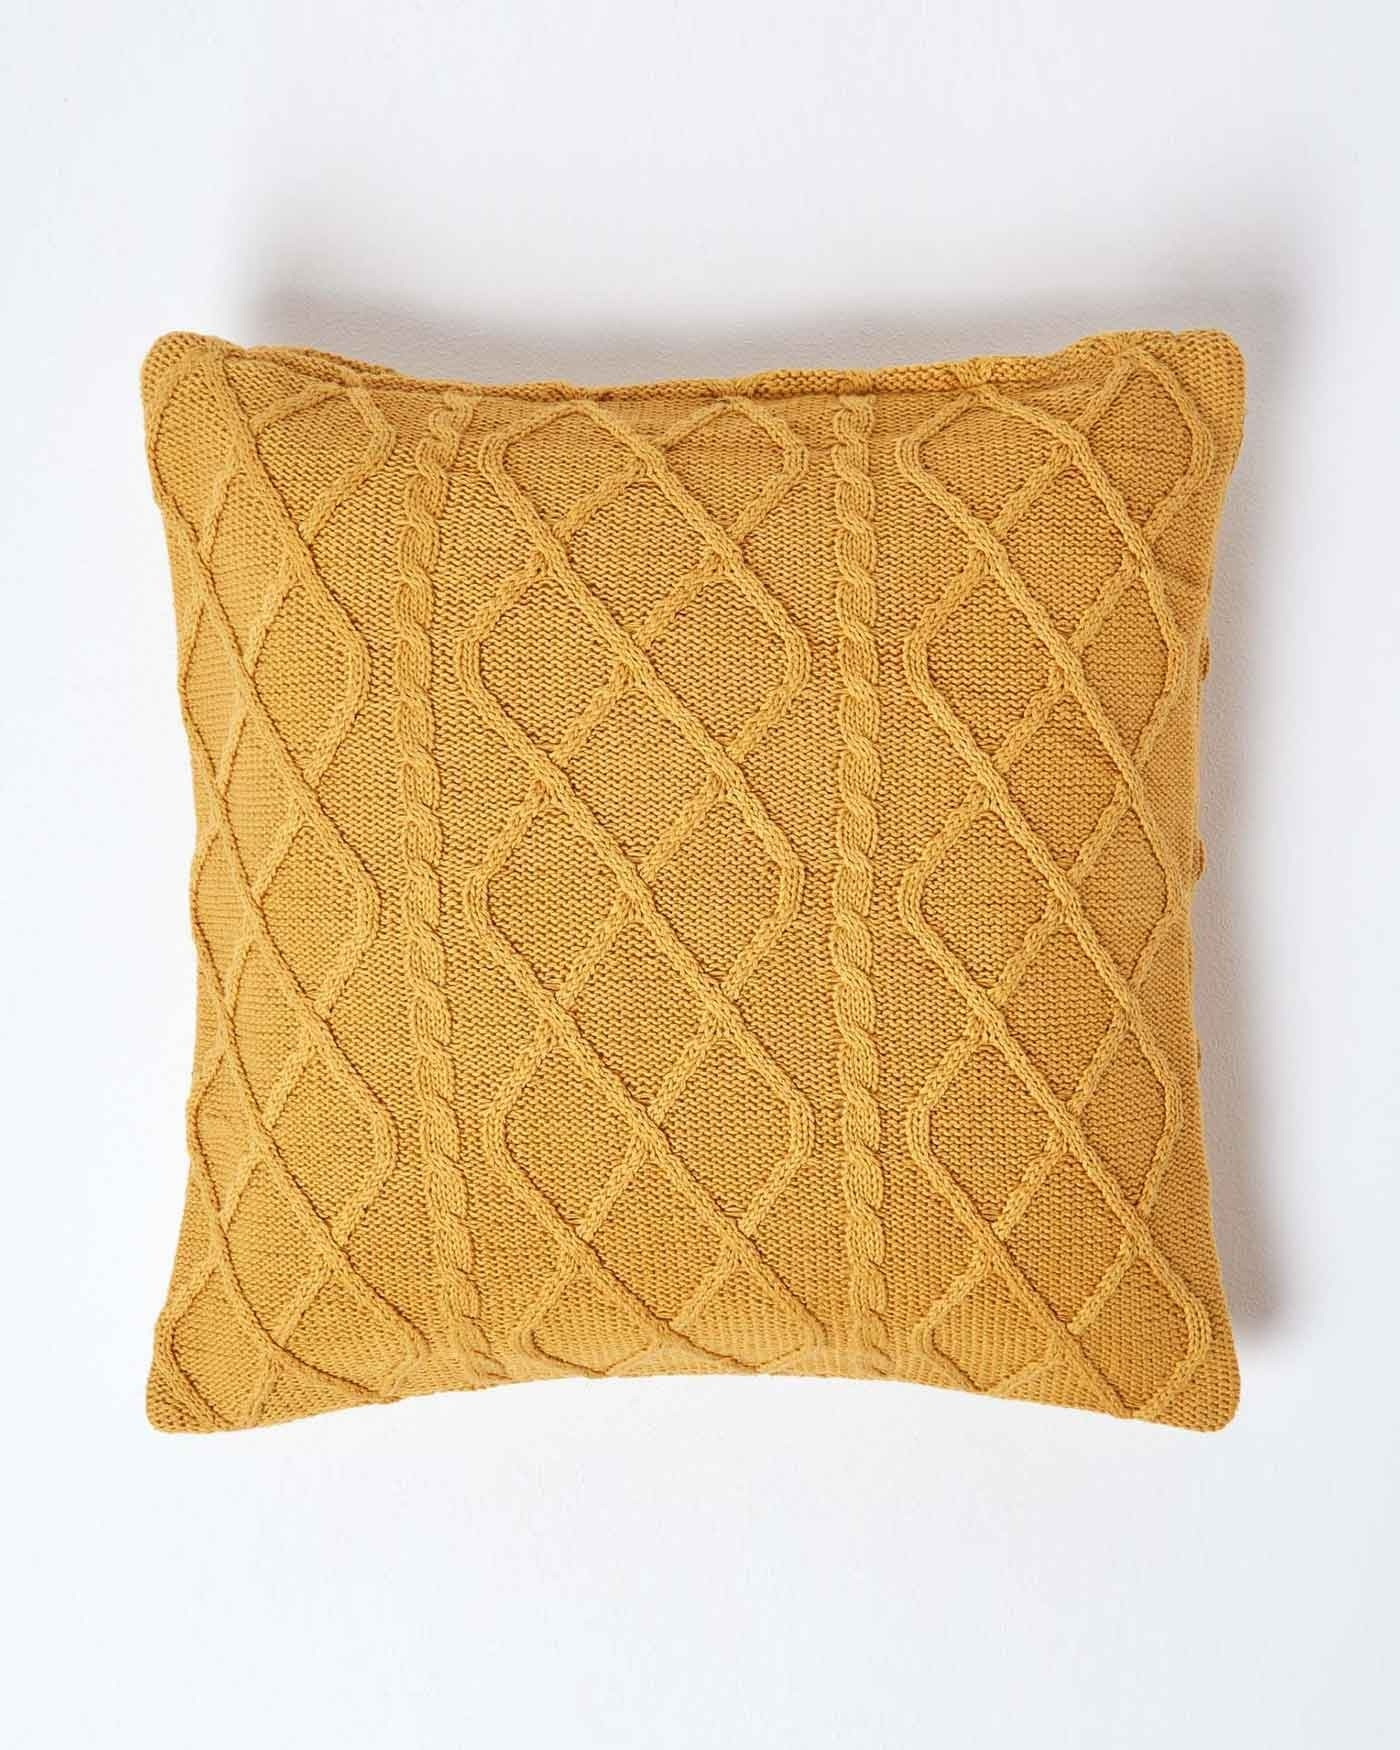 Knitting Pattern For Cushion Cover With Cables Mustard Diamond Cable Knit Cushion Cover 45 X 45 Cm